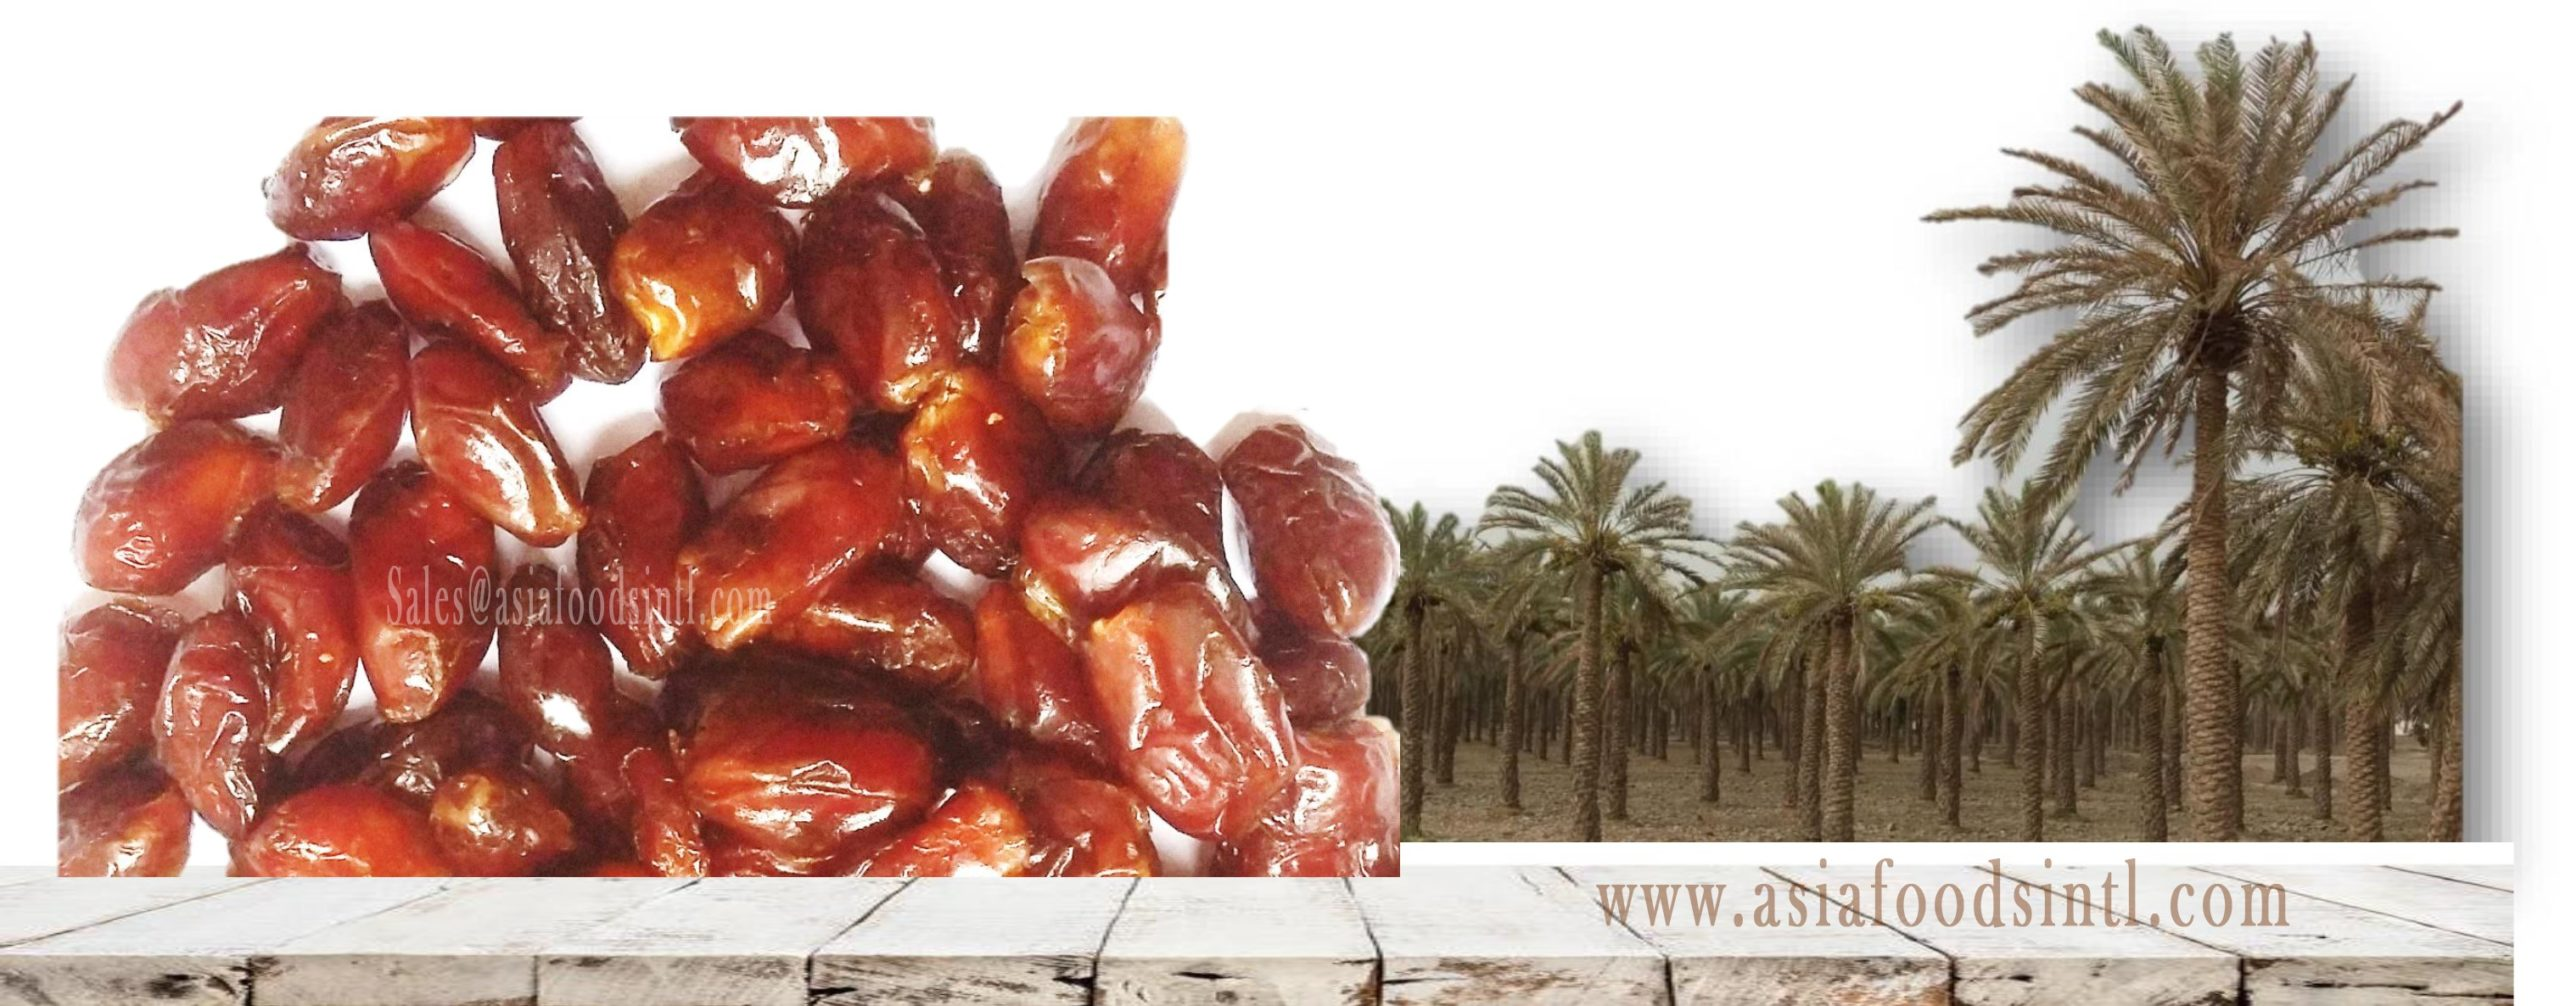 Pitted Dates -Stoned Dates -Pitted Aseel Dates